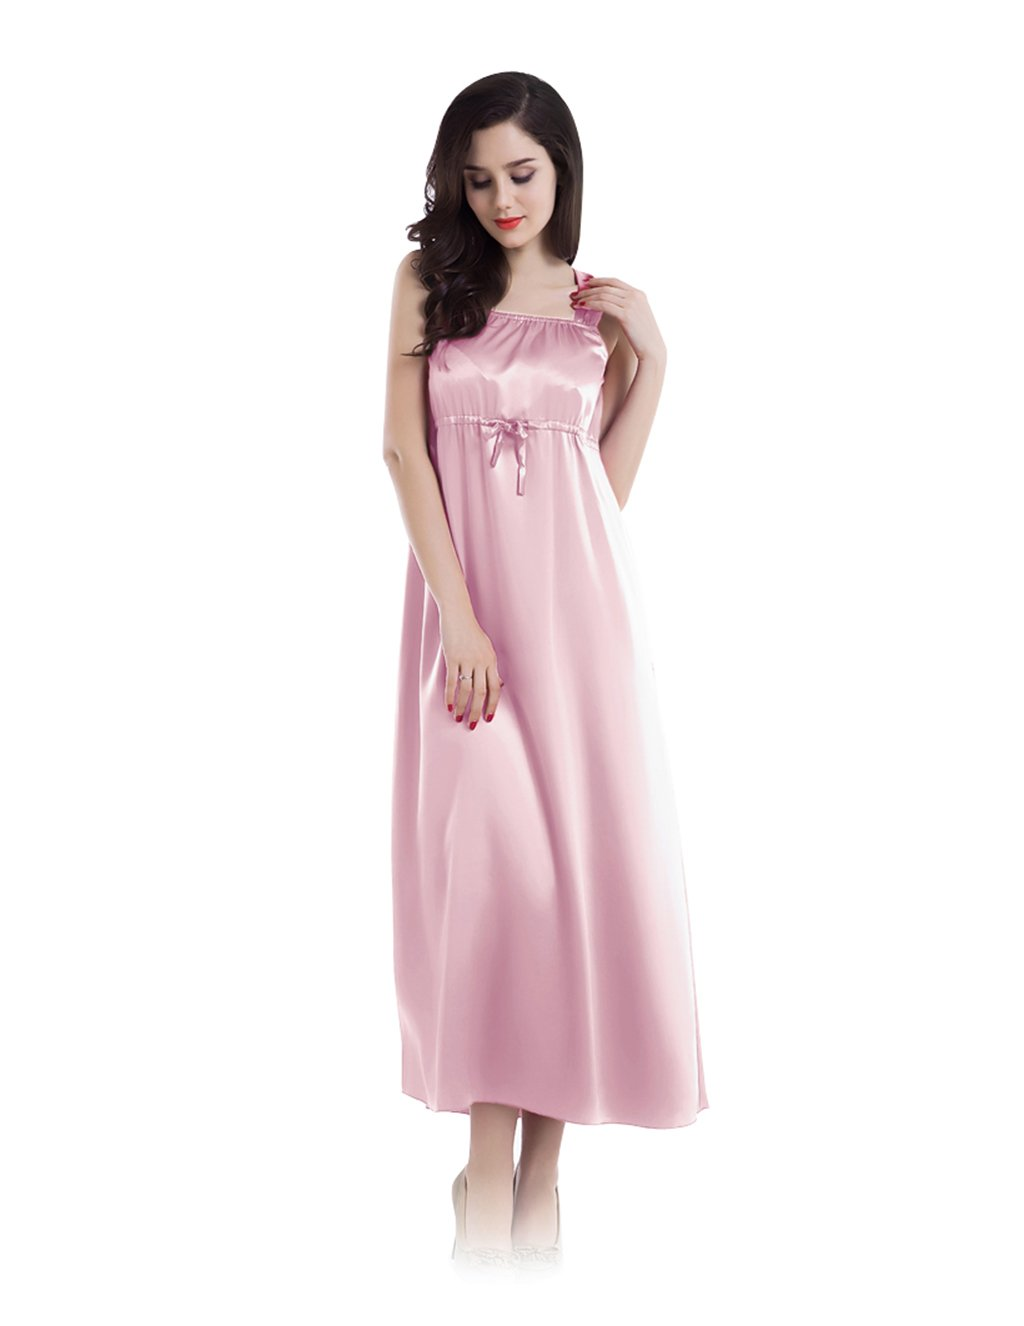 22 Momme square neckline empire style dress full-length silk nightgown